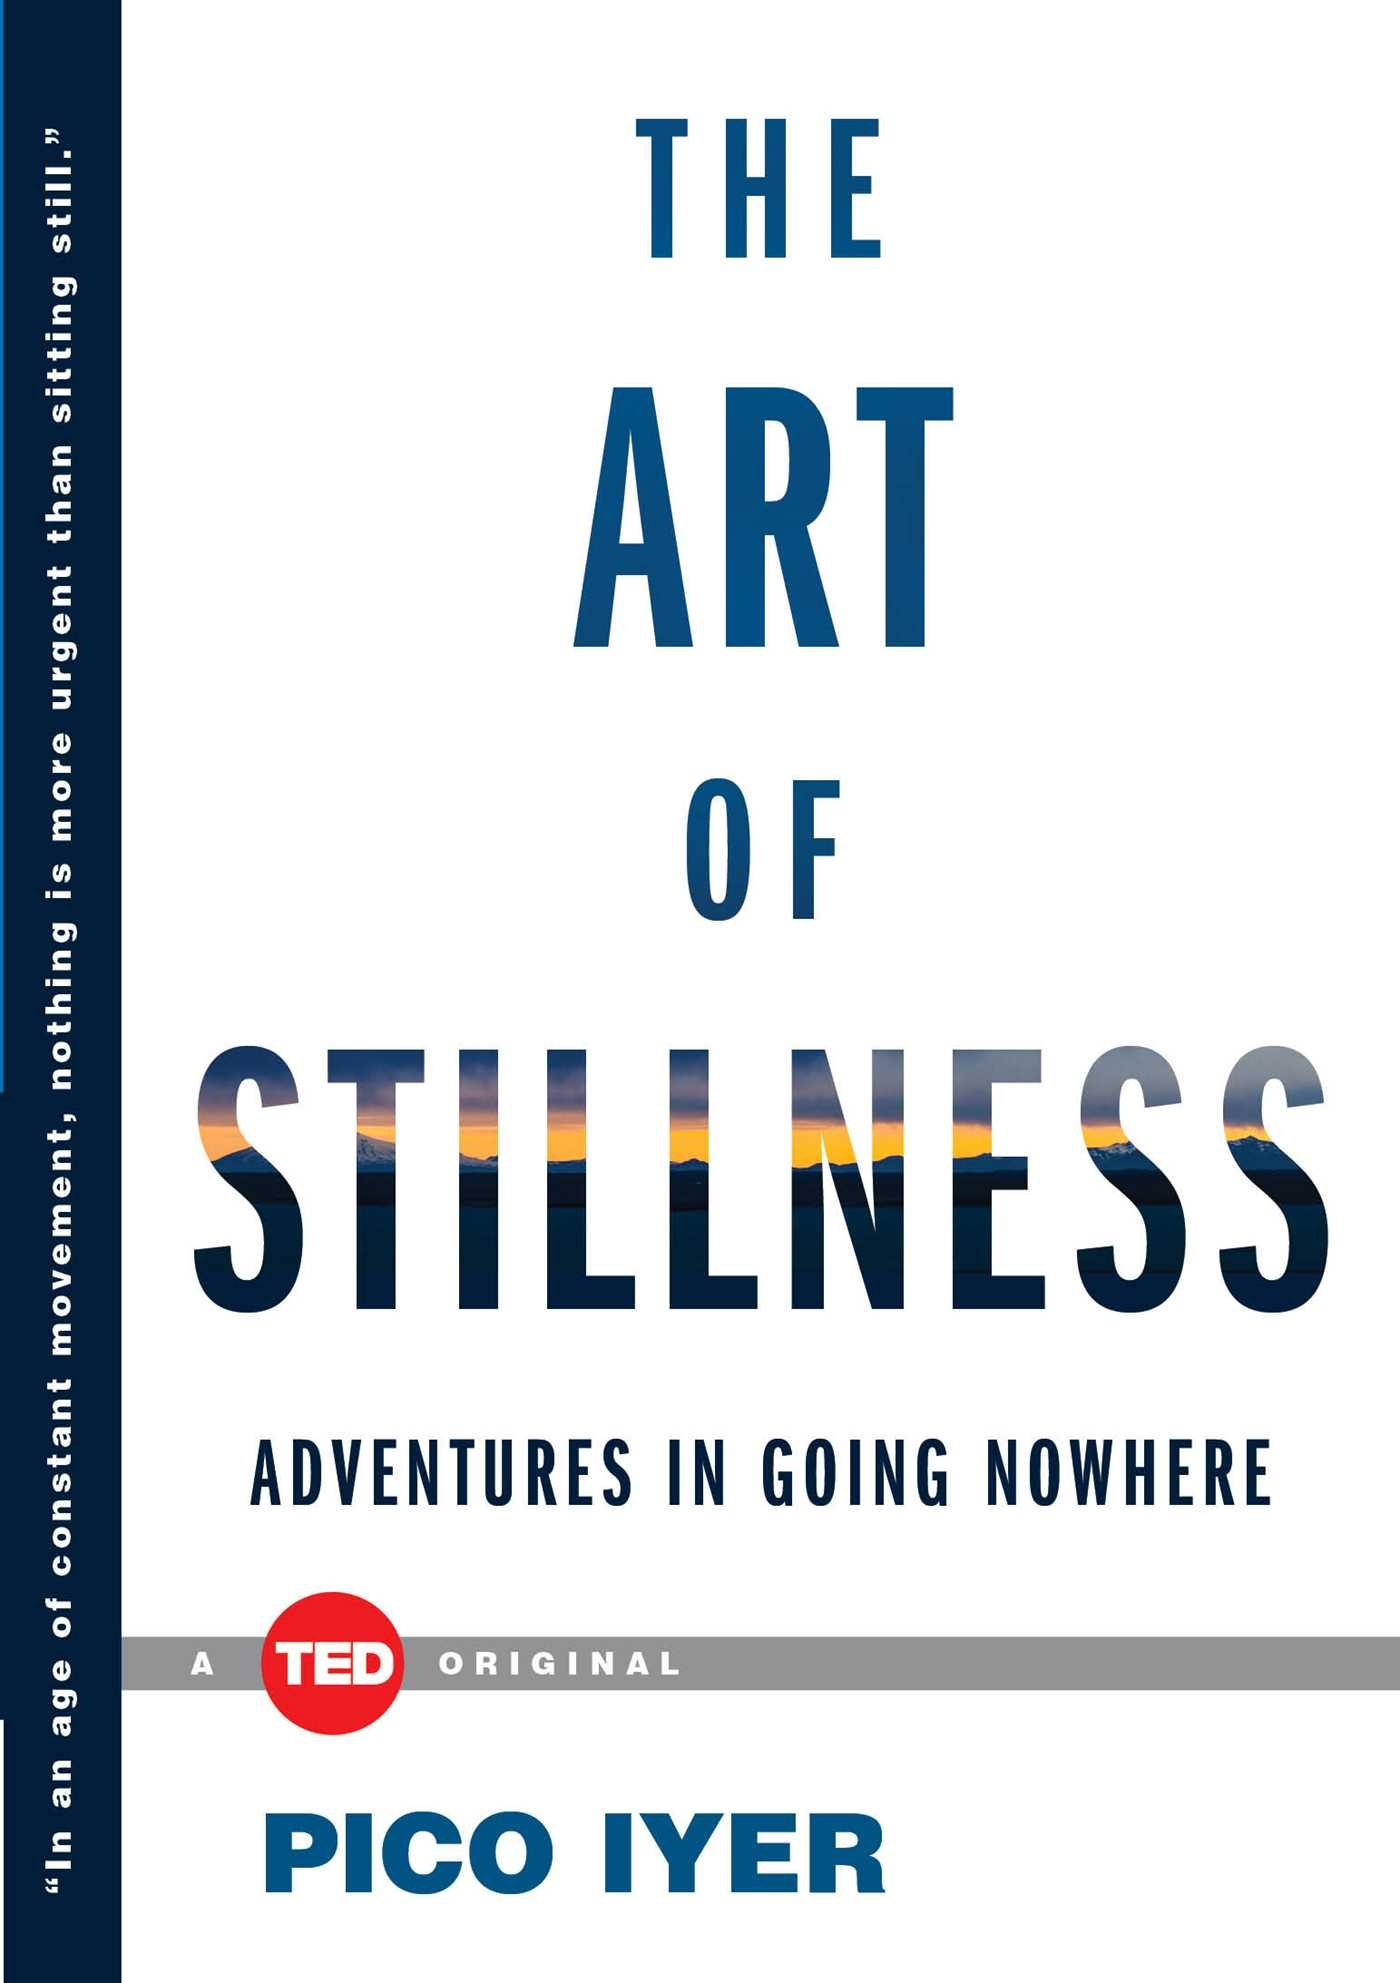 The Art of Stillness Pico Iyer TED Book review